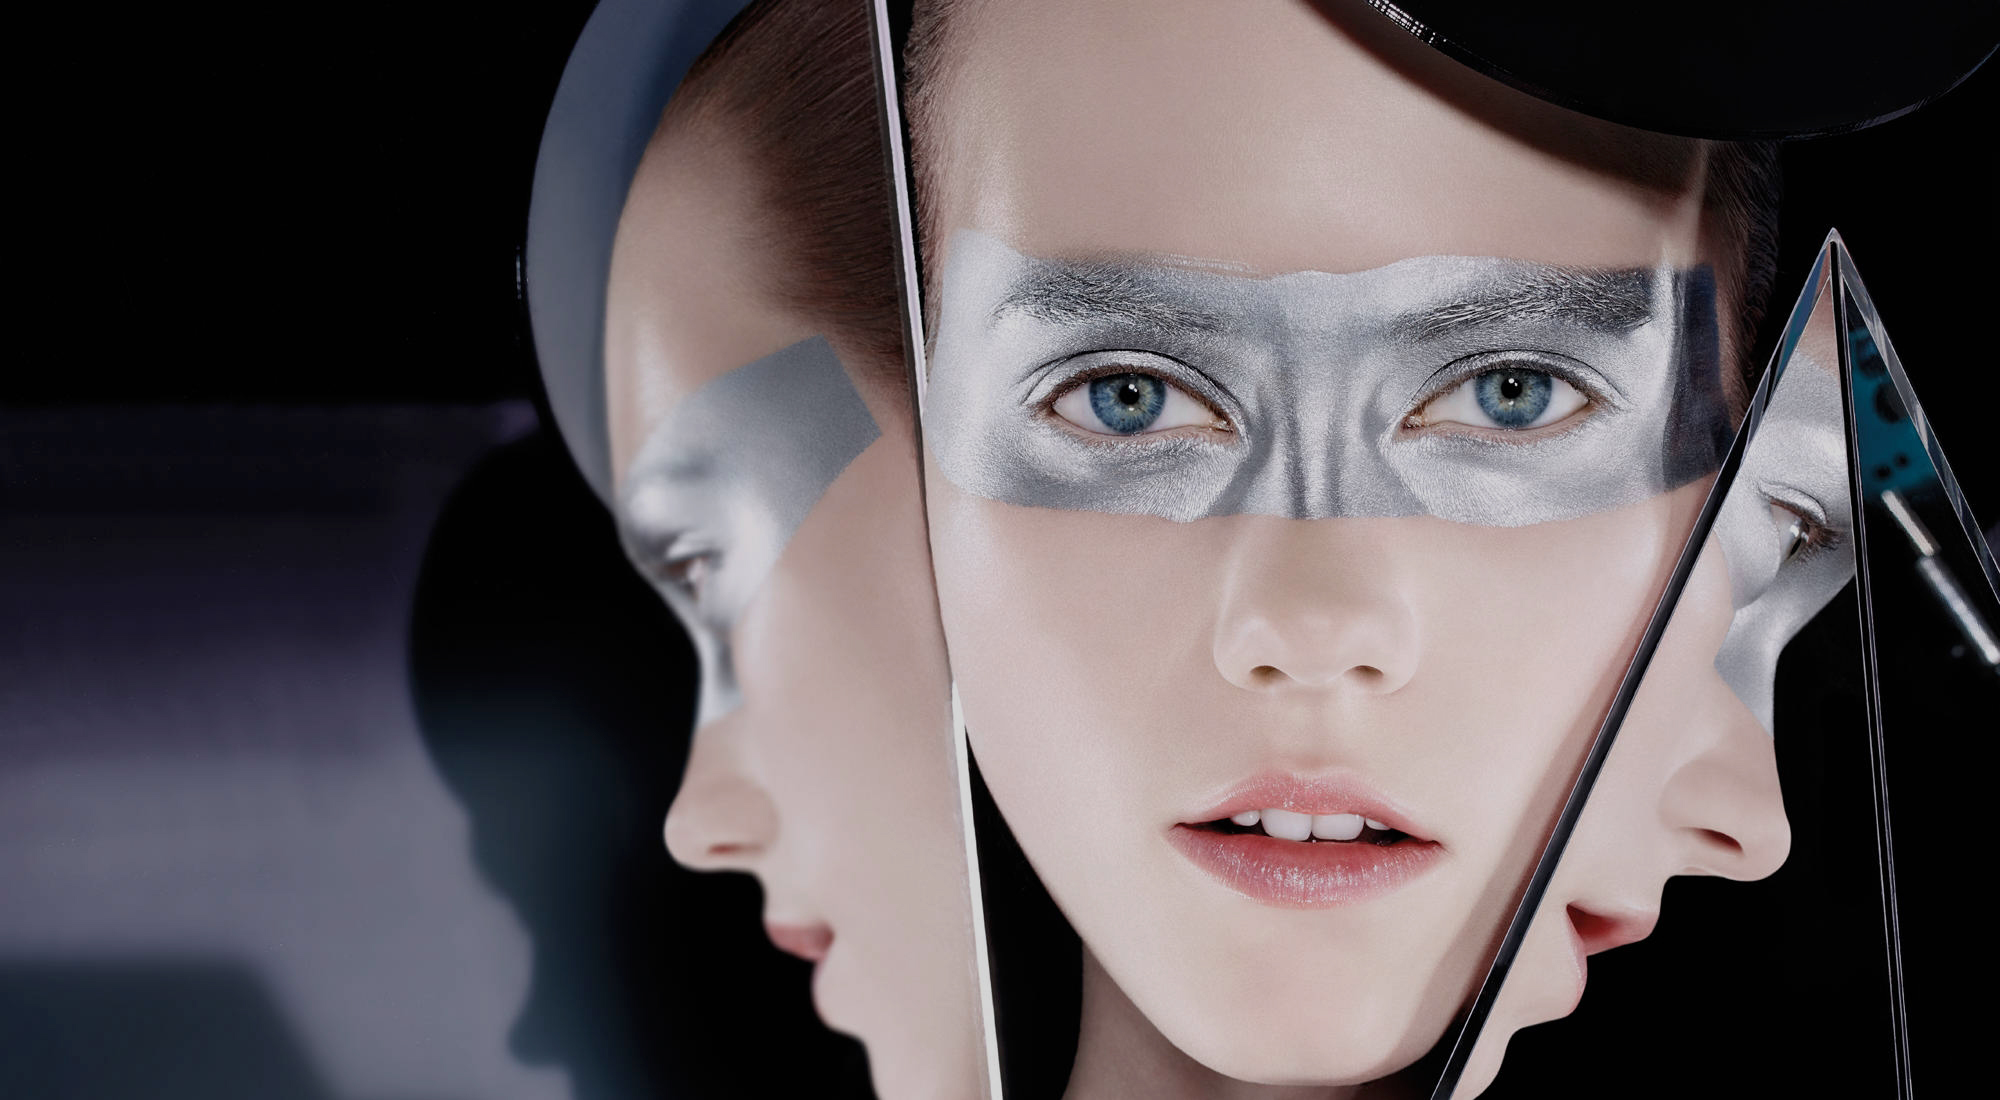 CHRISTIAN DIOR 'THE ART OF COLOR' BEAUTY BOOK